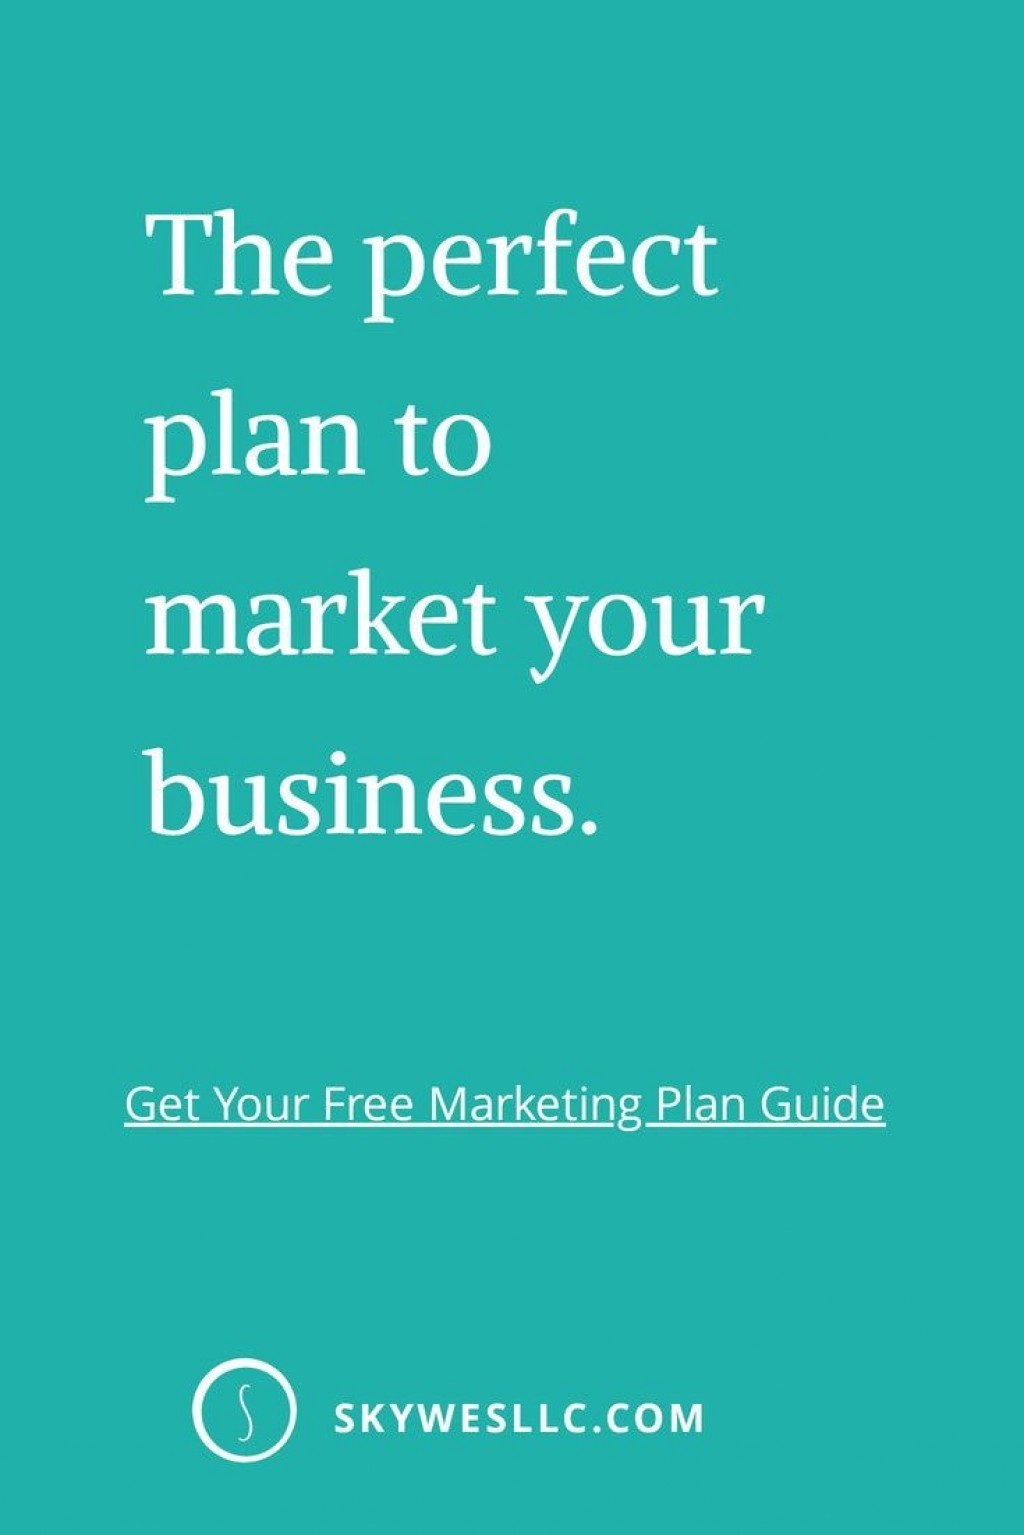 008 Fearsome Network Marketing Busines Plan Template Design  Multi LevelLarge